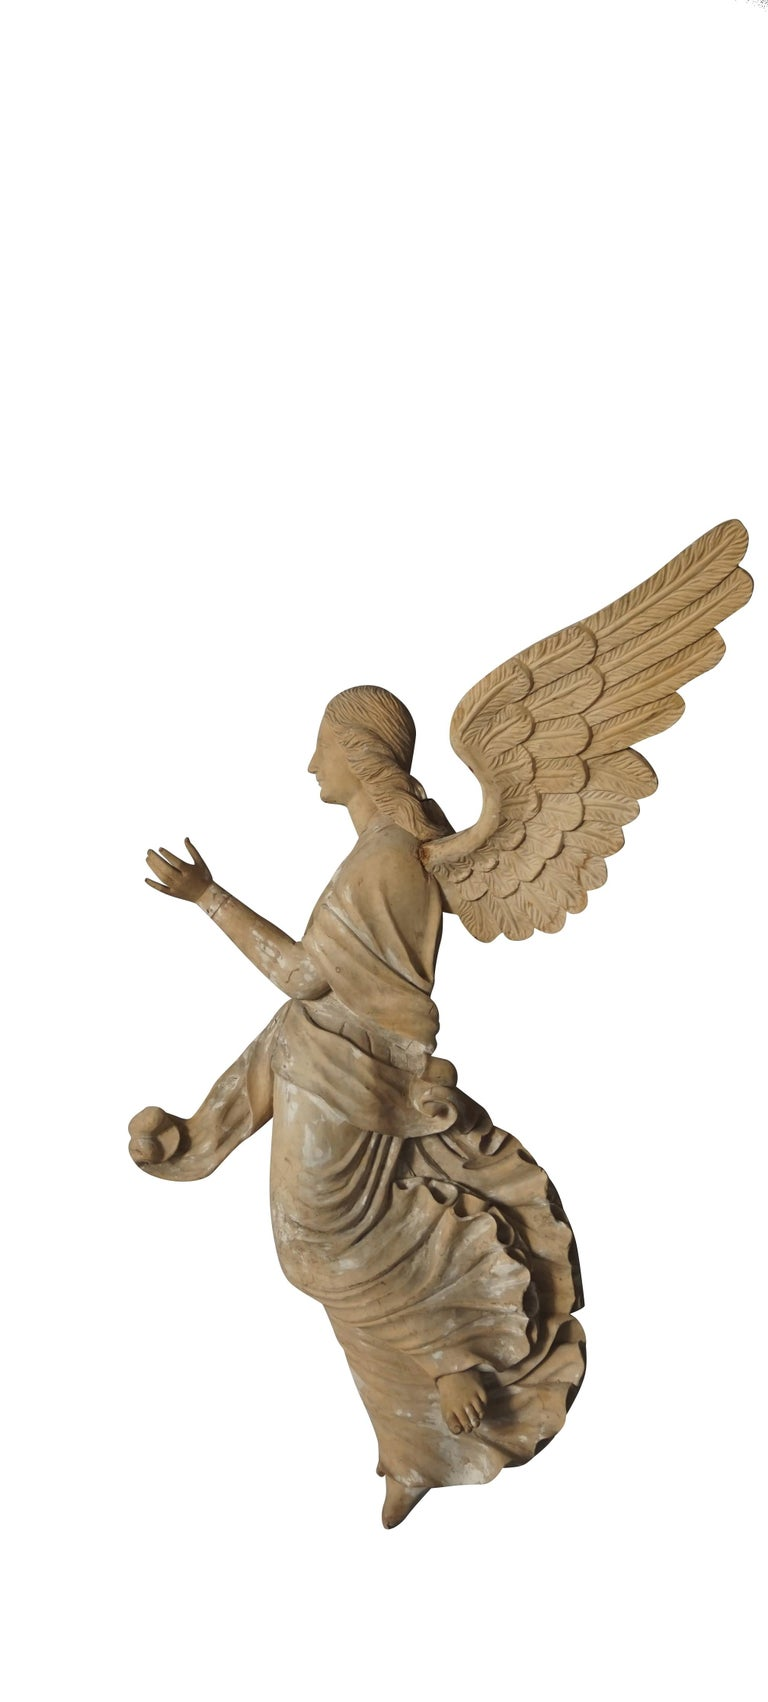 19th Century Italian Wooden Angels Relief, Antique Basswood Wall Decor In Good Condition For Sale In West Palm Beach, FL